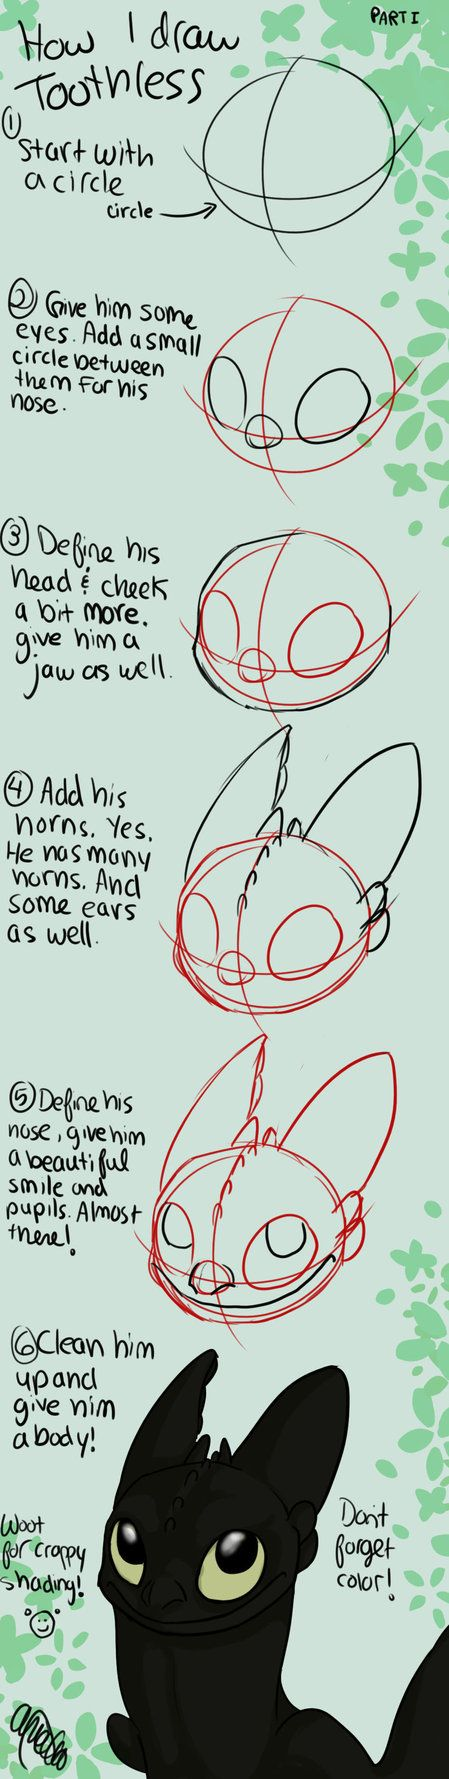 Toldya I had Toothless on my mind. ^^Just a really quick tutorial on how I draw Toothless. I'm no expert on how to draw him, but this is how I do it, so not nit picking please. It was just a quick ...